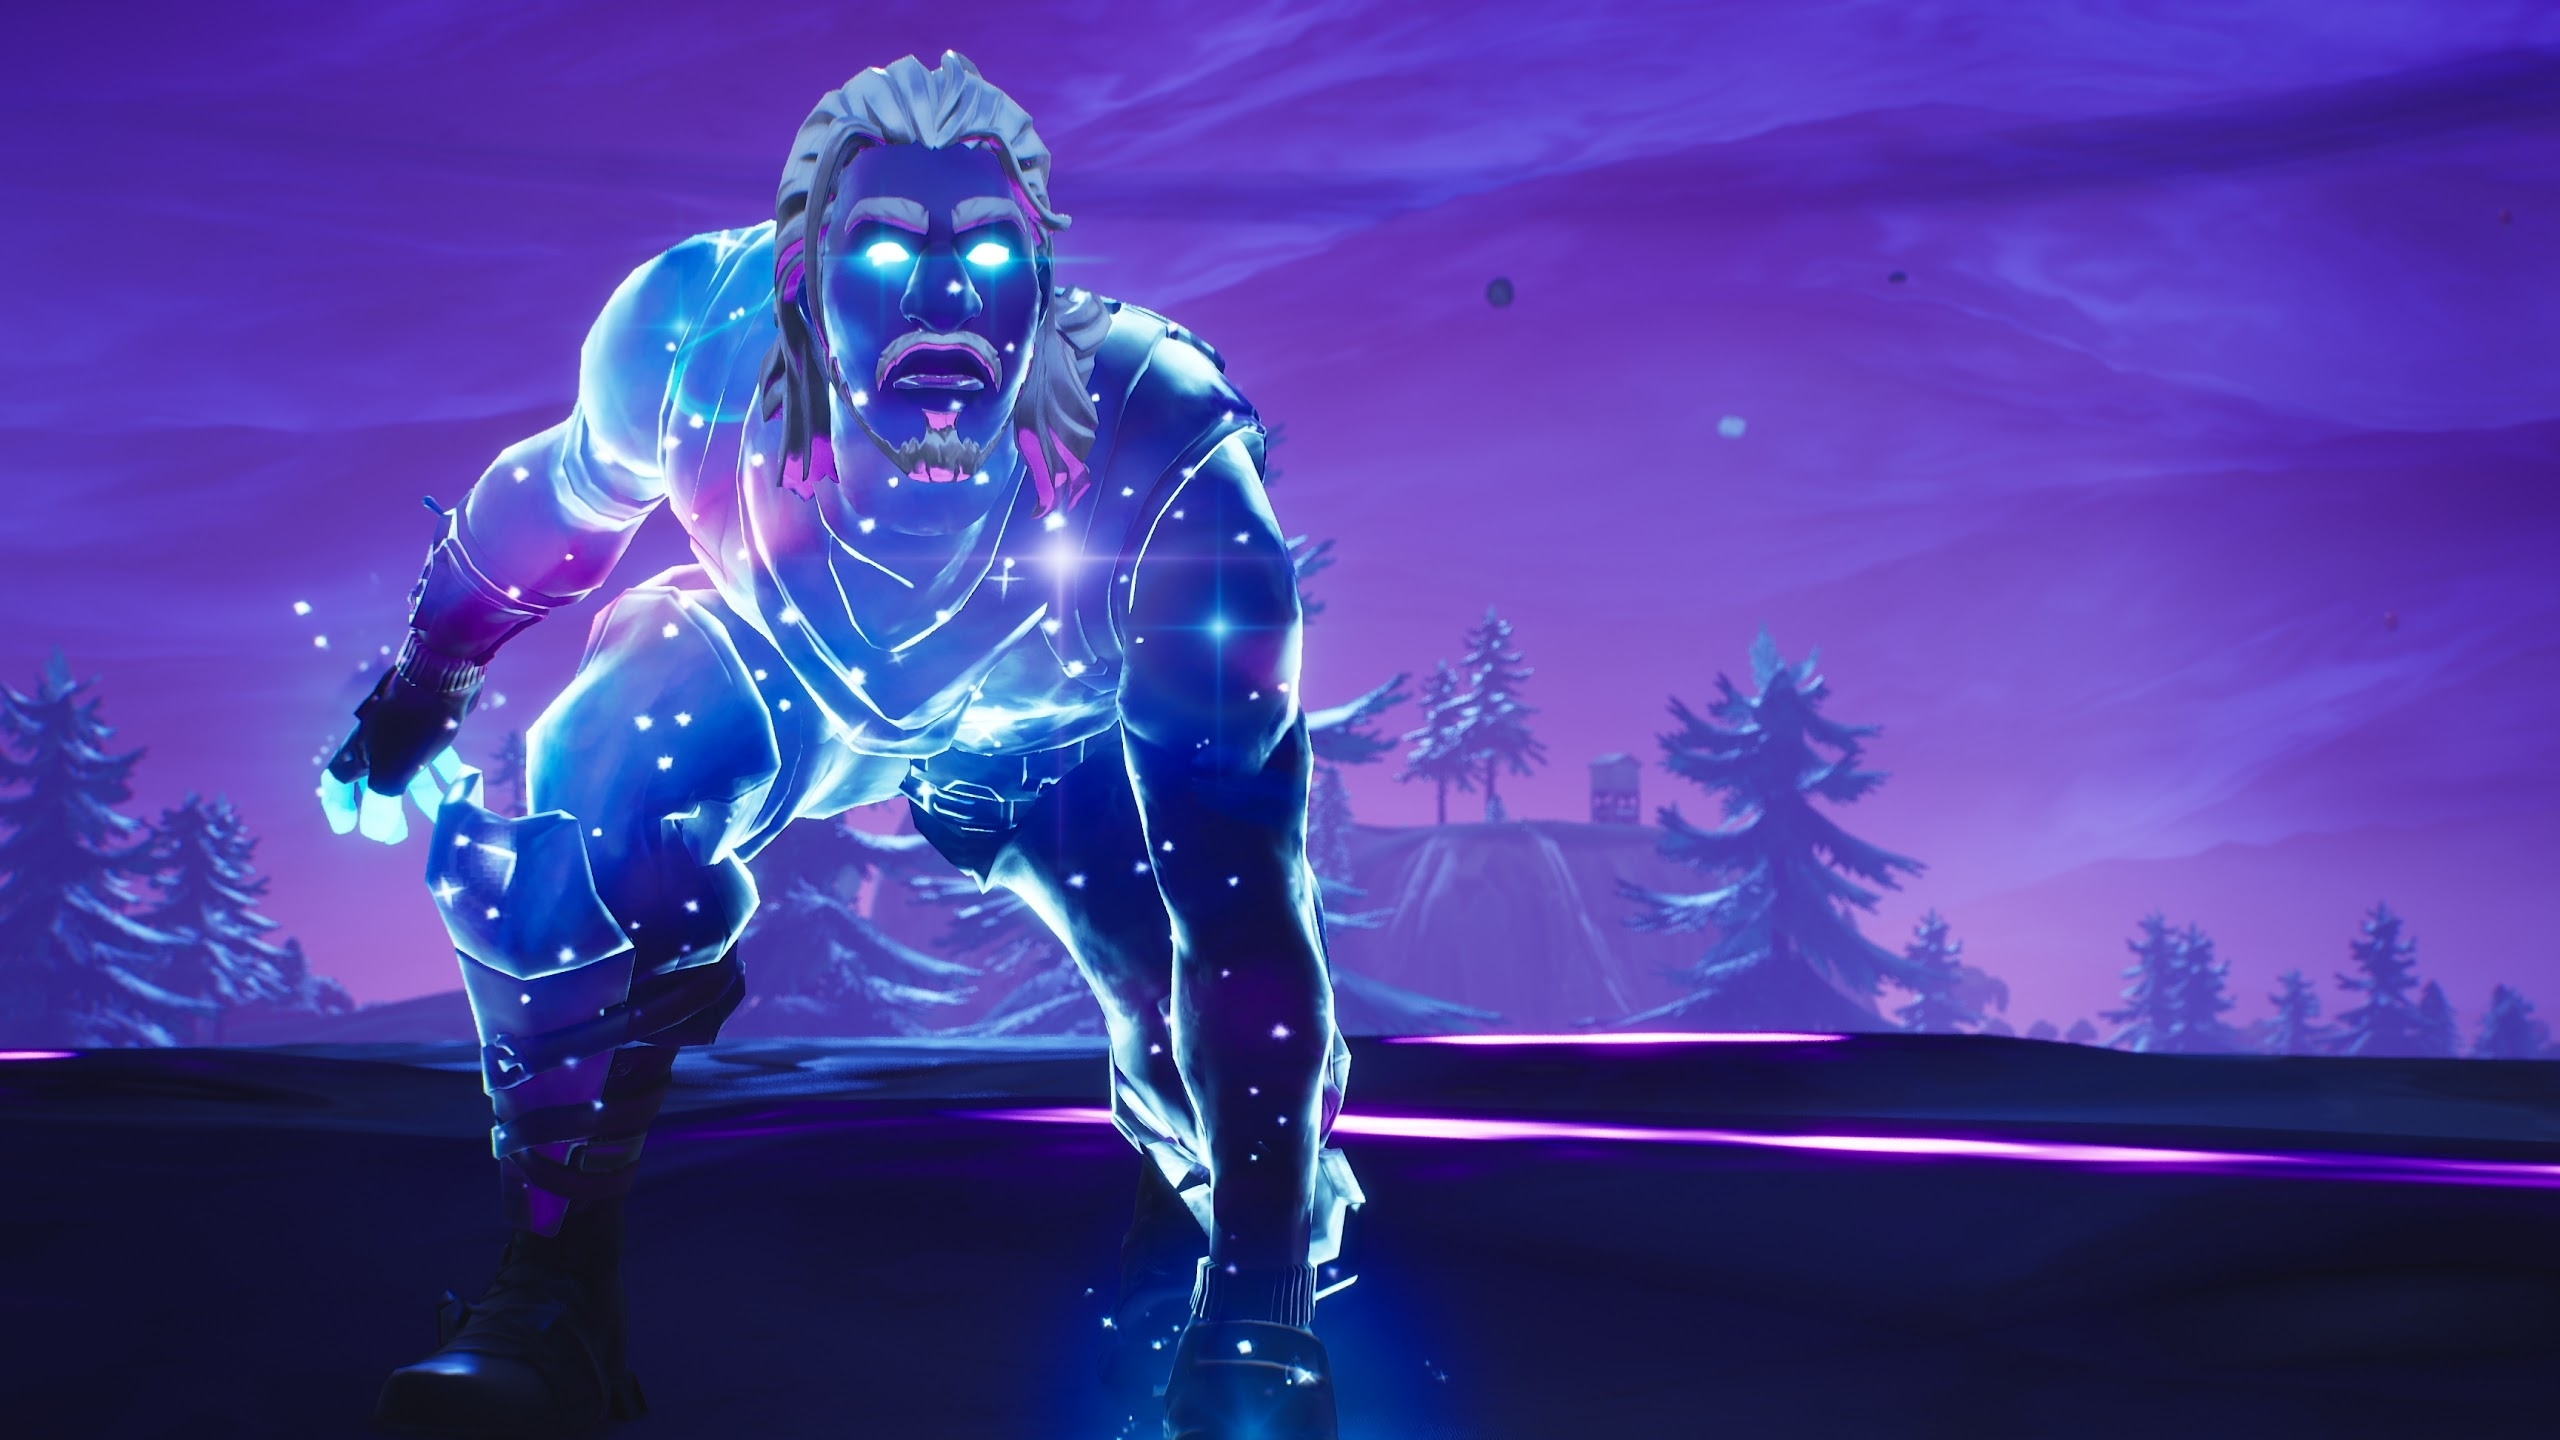 2560x1440 Fortnite Galaxy 1440p Resolution Wallpaper Hd